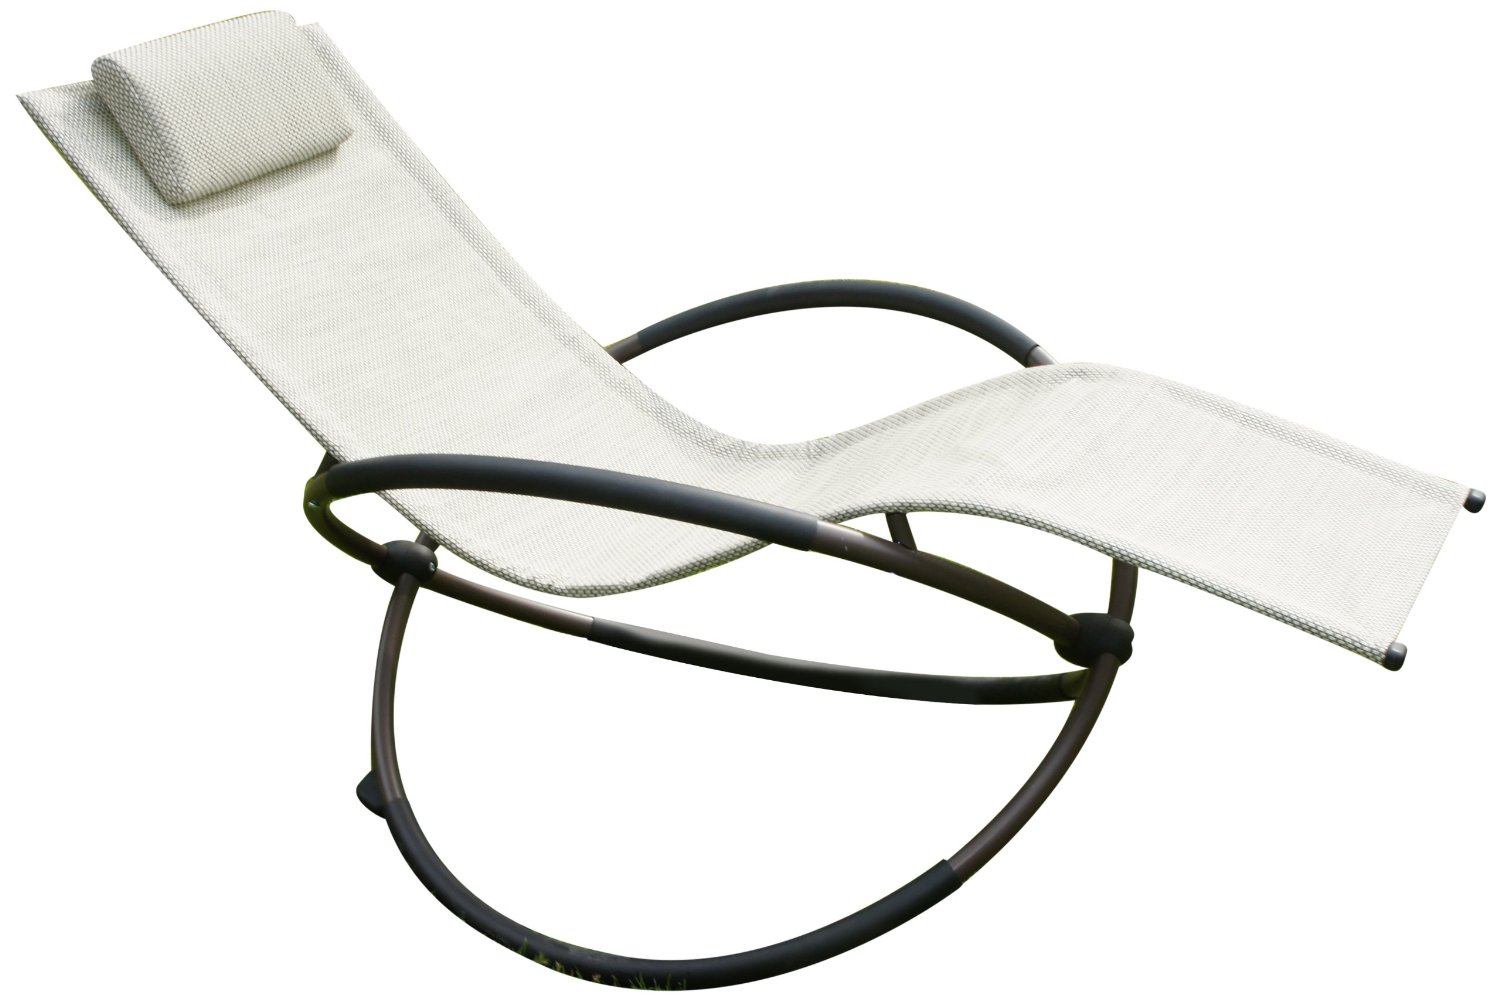 Rocking chair jardin - Rocking chair jardin ...